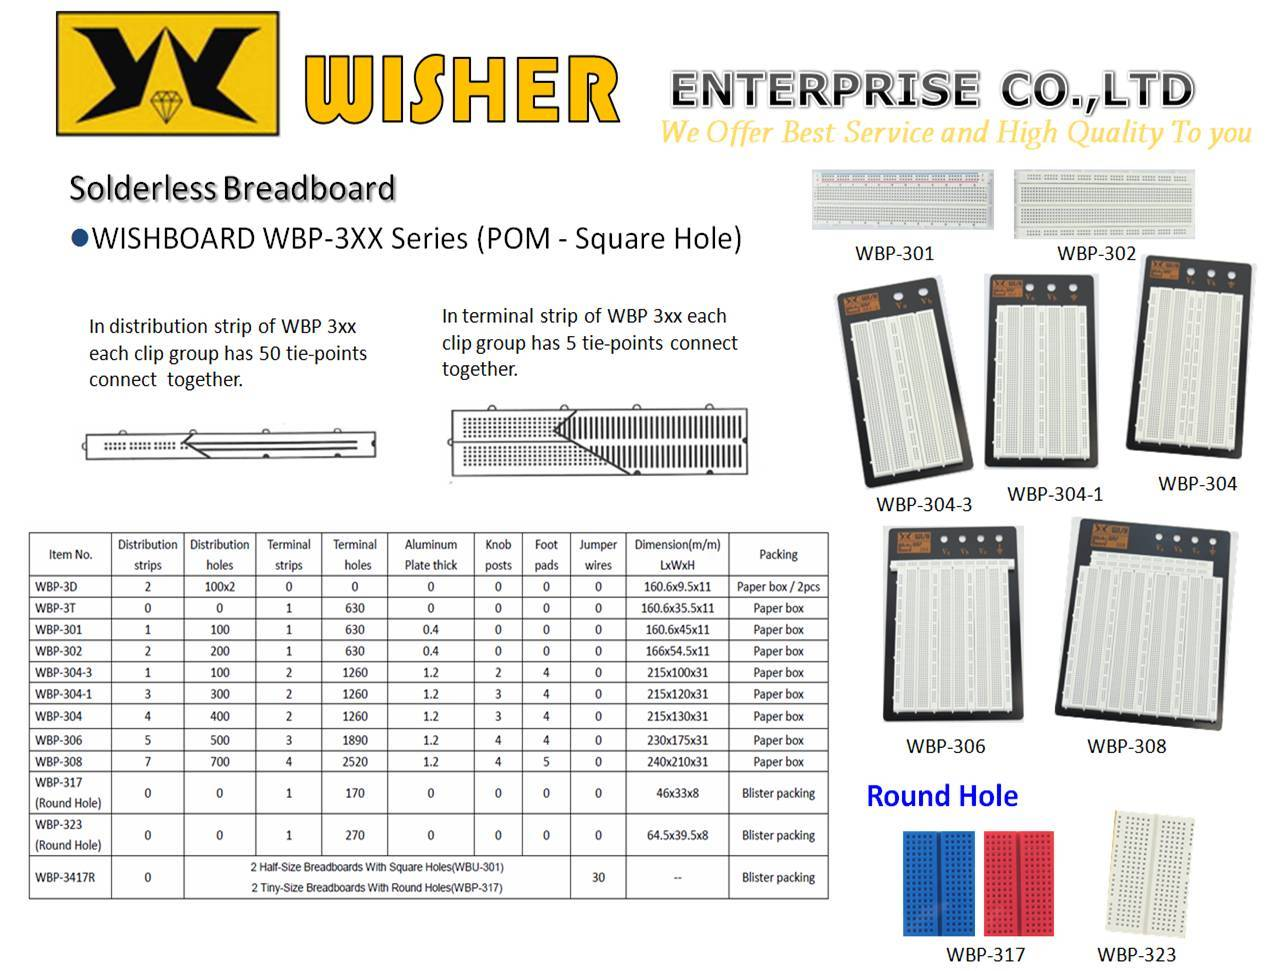 Solderless Breadboard, WISHBOARD WBP-3XX Series(POM - Square Hole)